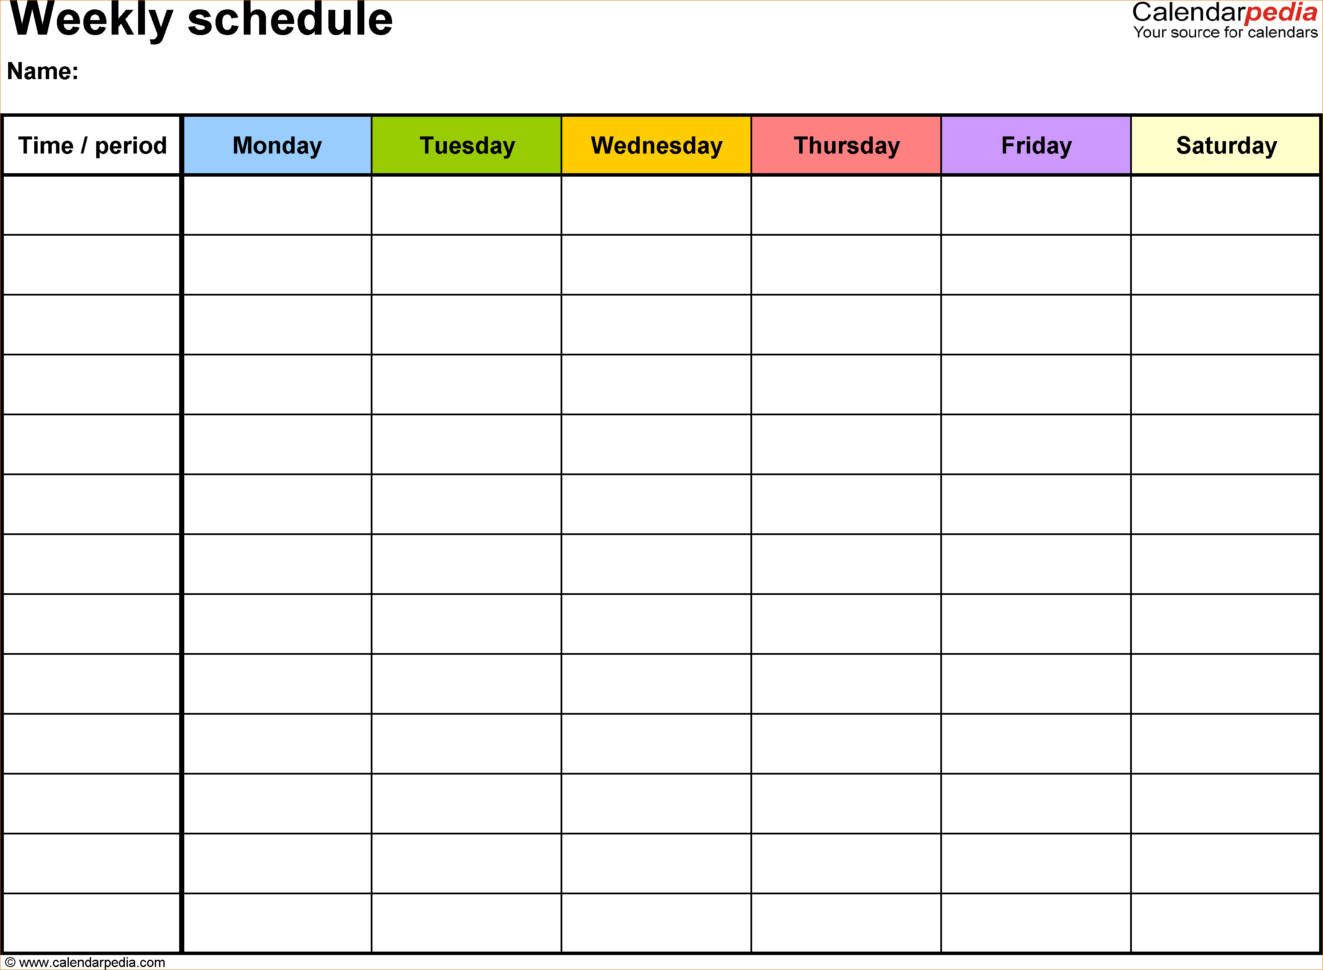 6  Daily Schedule Template Pdf | Ganttchart Template In Gantt Chart Template Pdf